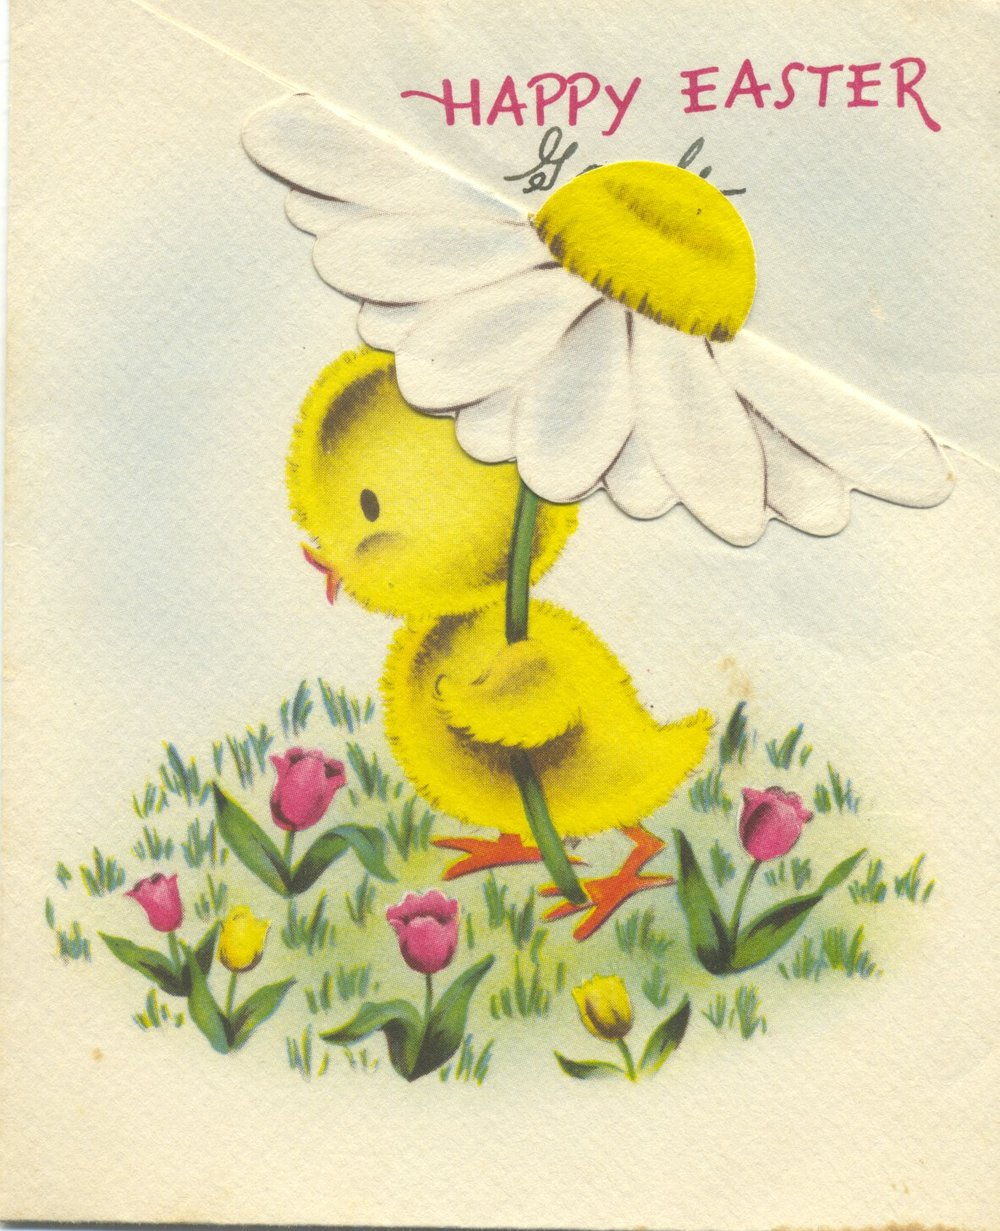 Vintage Norcross Easter card from my maternal grandparents found in my baby book, early 1940s